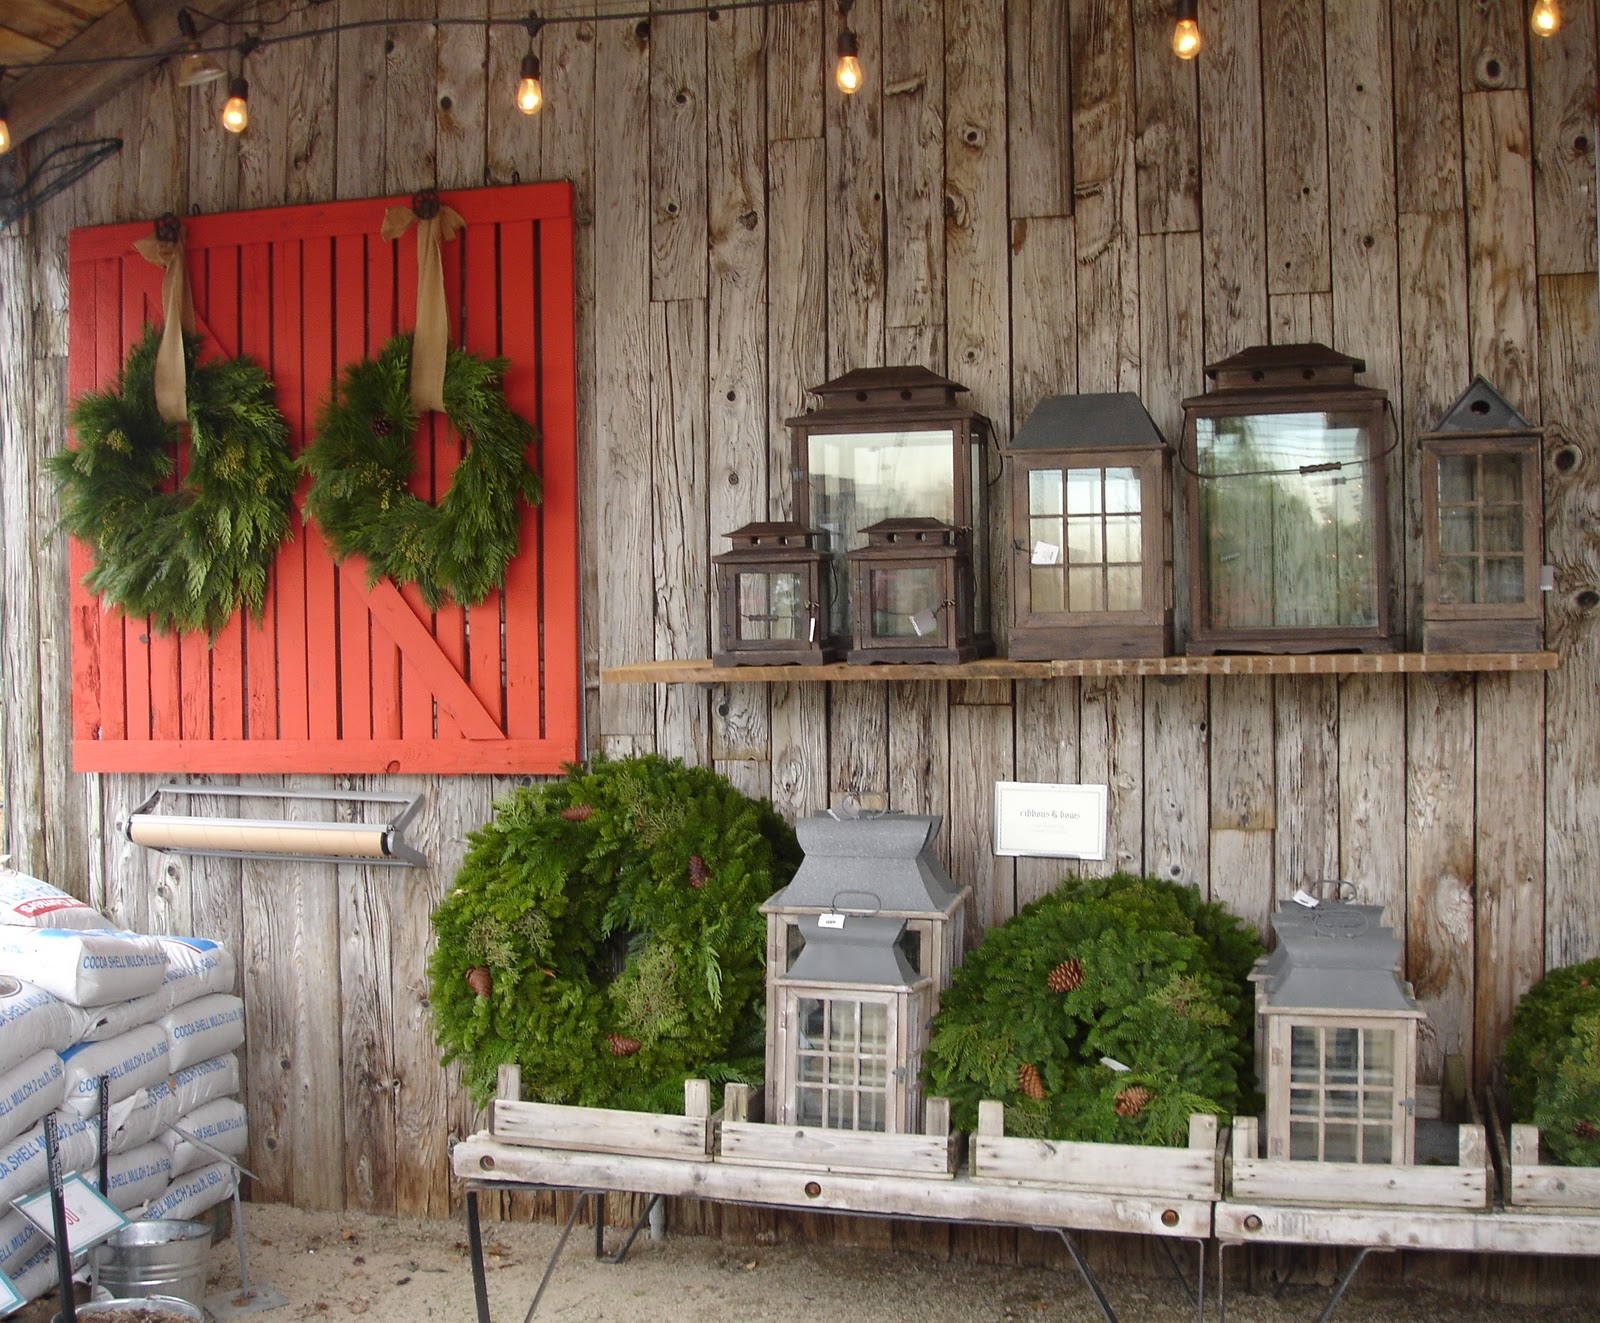 Loft & Cottage: Holiday Decorating Lessons From Terrain